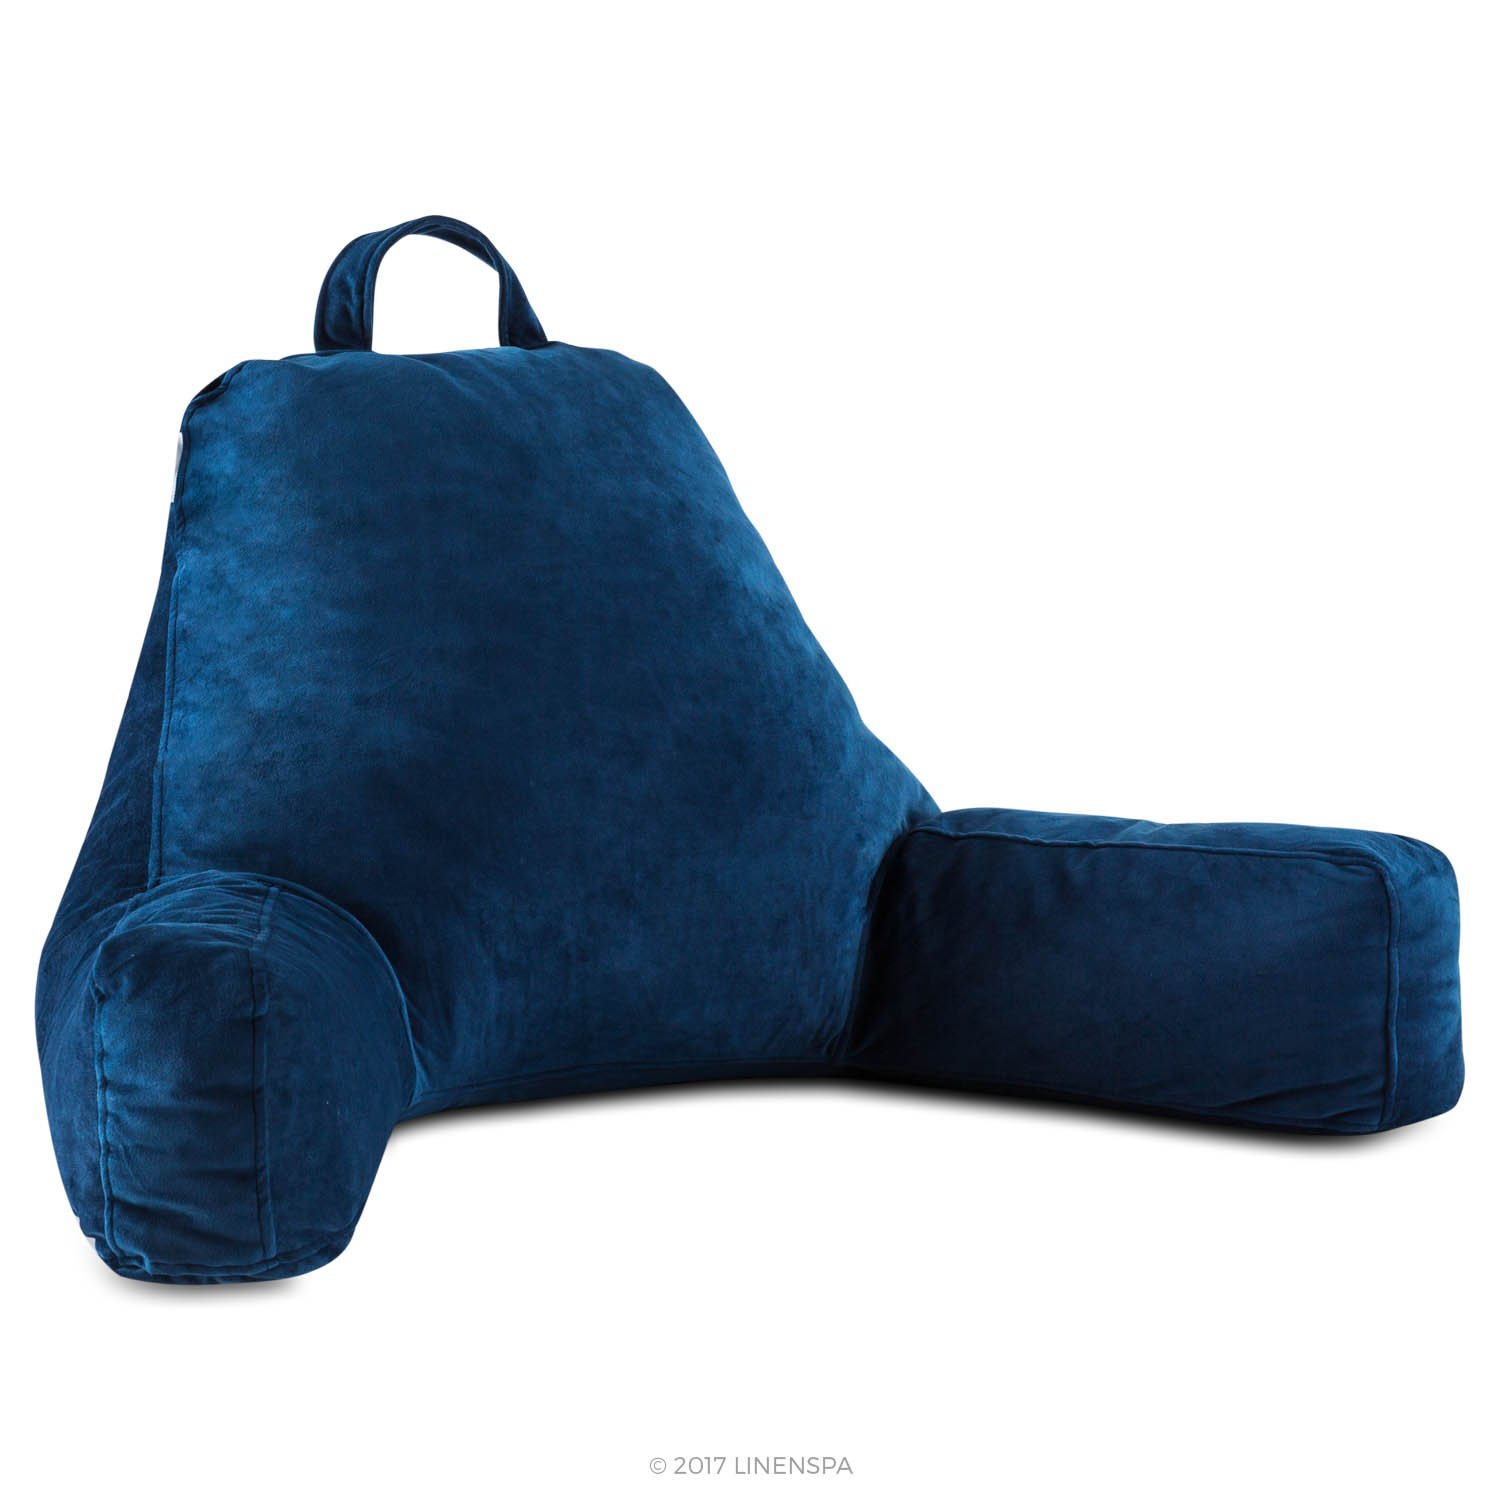 Linenspa Reading Pillow - Large Design for Adults - Shredded Memory Foam Blend Fill - Great Support for Reading, Relaxing, Watching TV - Soft Velour Cover - Extra Large - Navy Blue